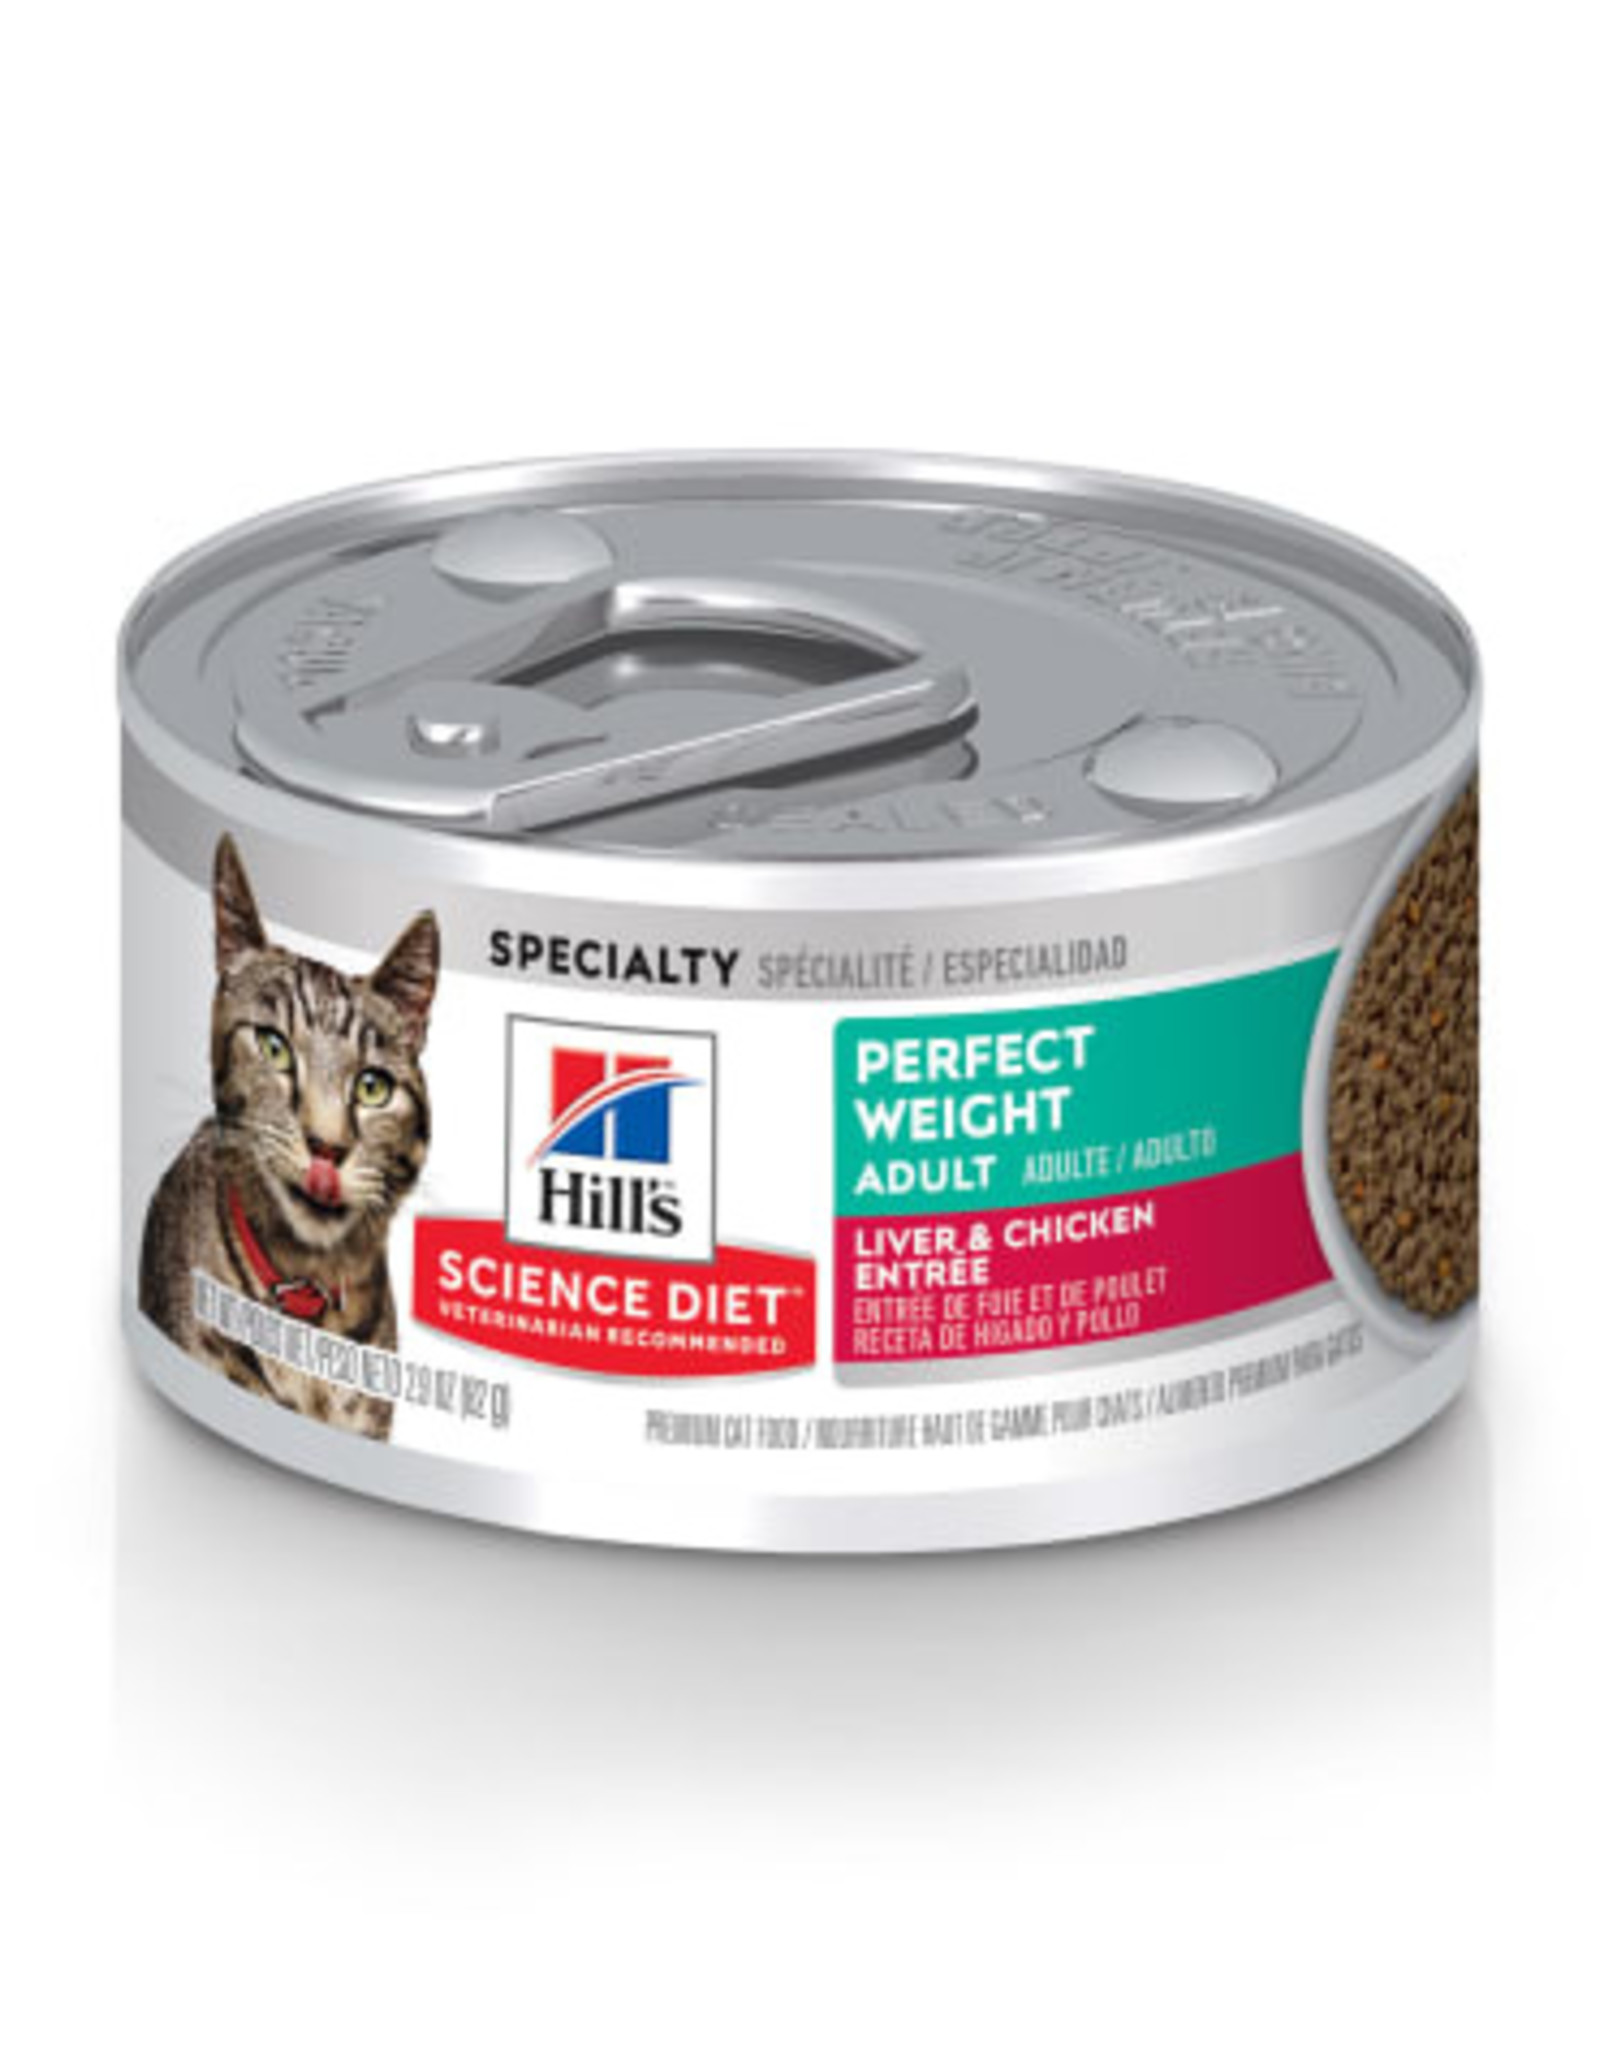 Hill's Science Diet Hill's Science Diet Feline Can Perfect Weight 82gm